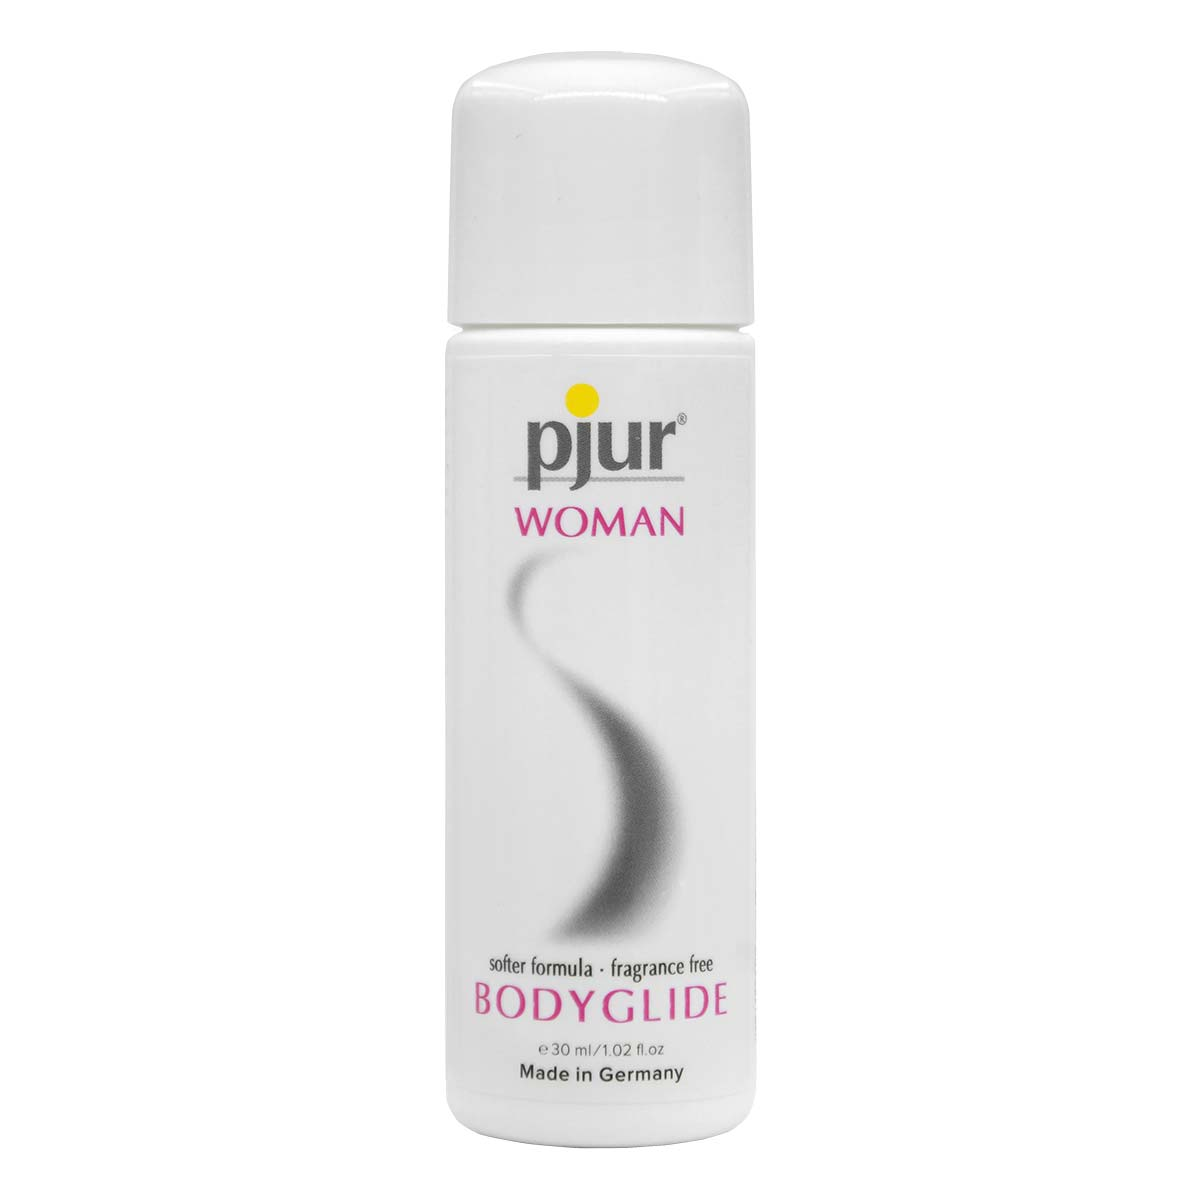 pjur Woman 30ml Silicone-based Lubricant